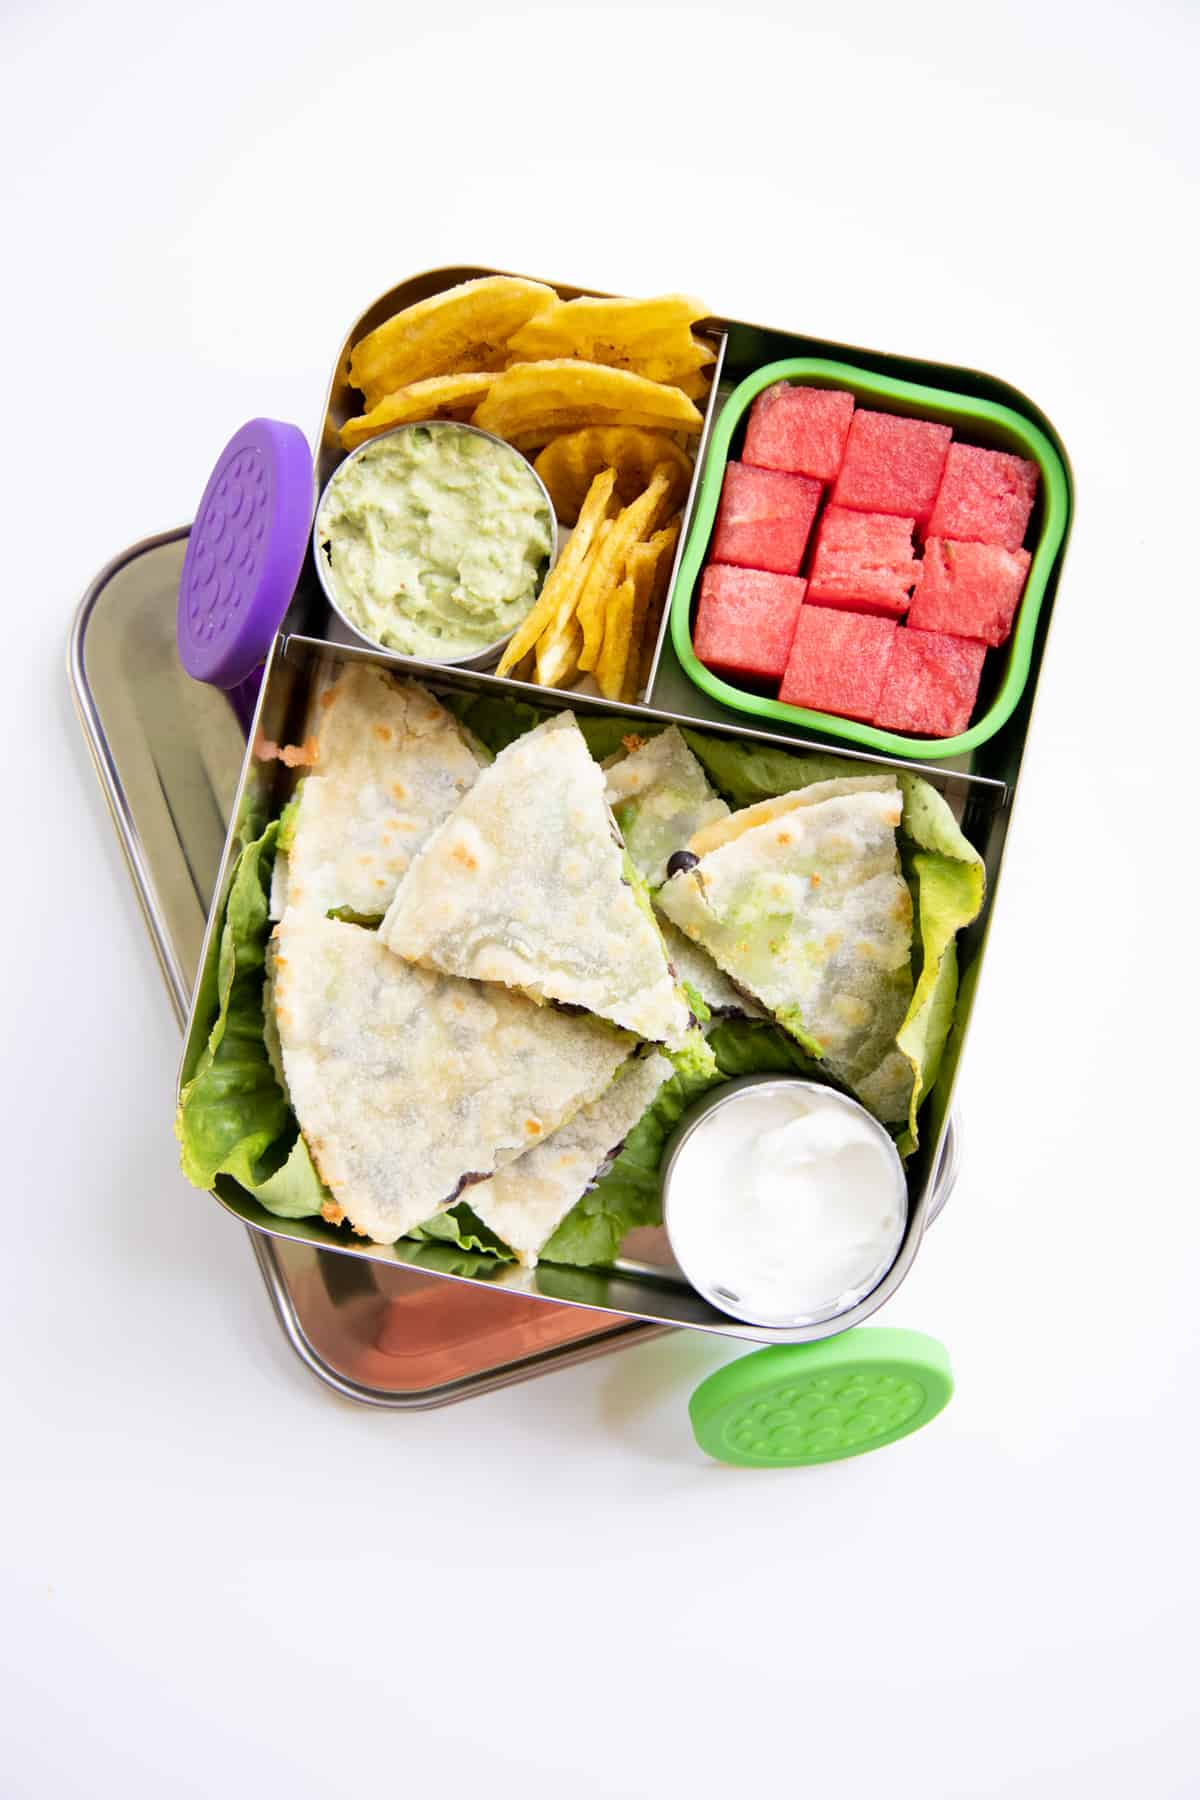 Stainless steel divided lunchbox with quesadilla, watermelon, plantain chips, and guacamole